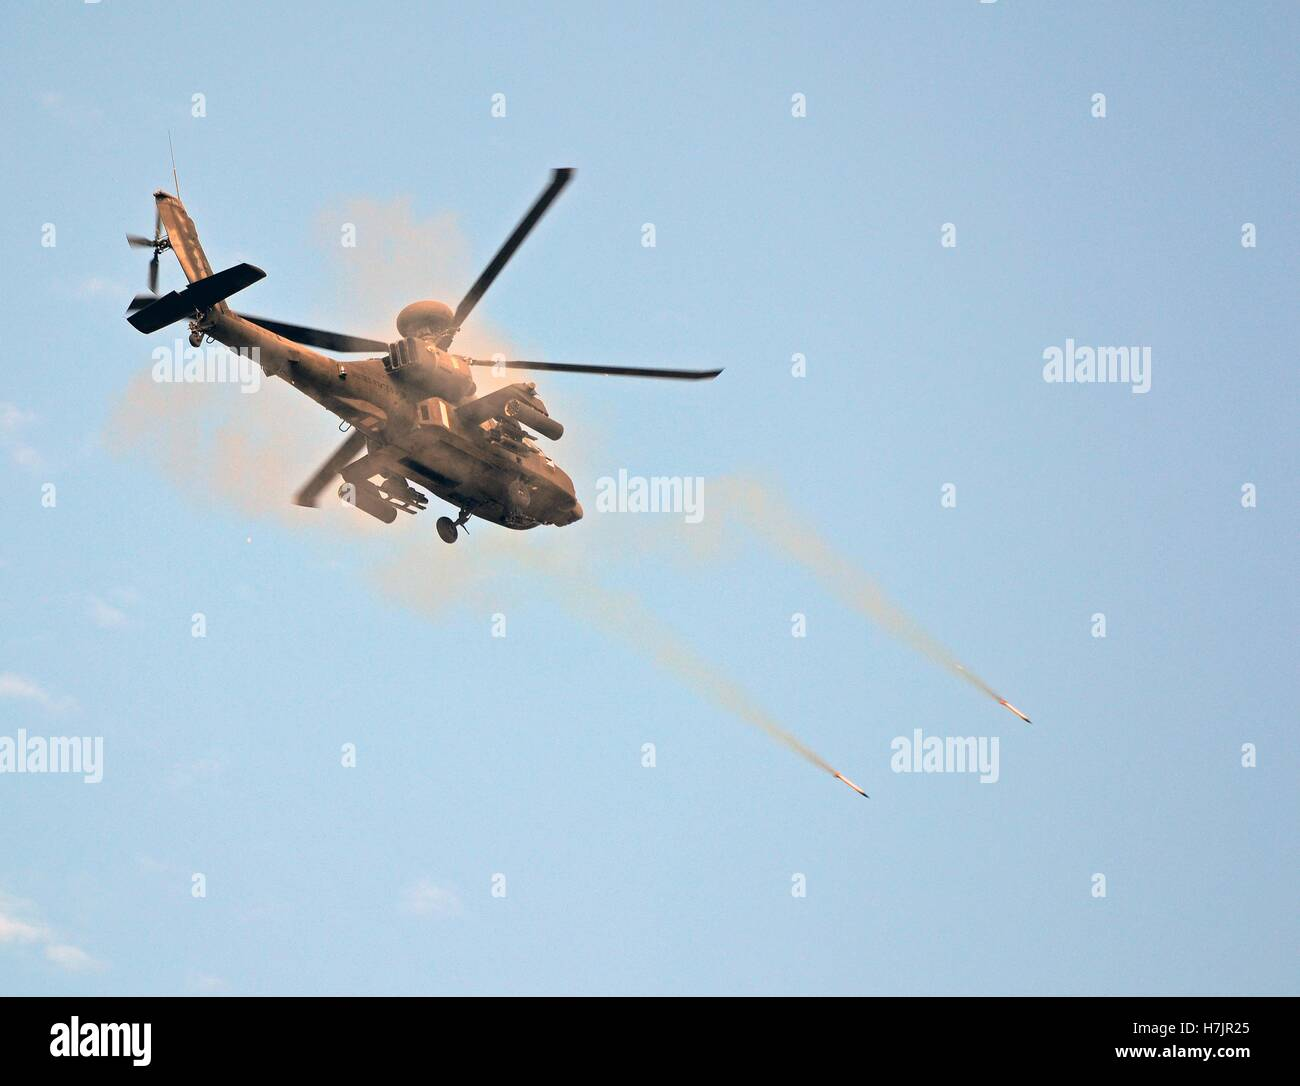 An AH-64 Apache attack helicopter fires simulation missiles during an aerial gunnery exercise September 9, 2014 - Stock Image